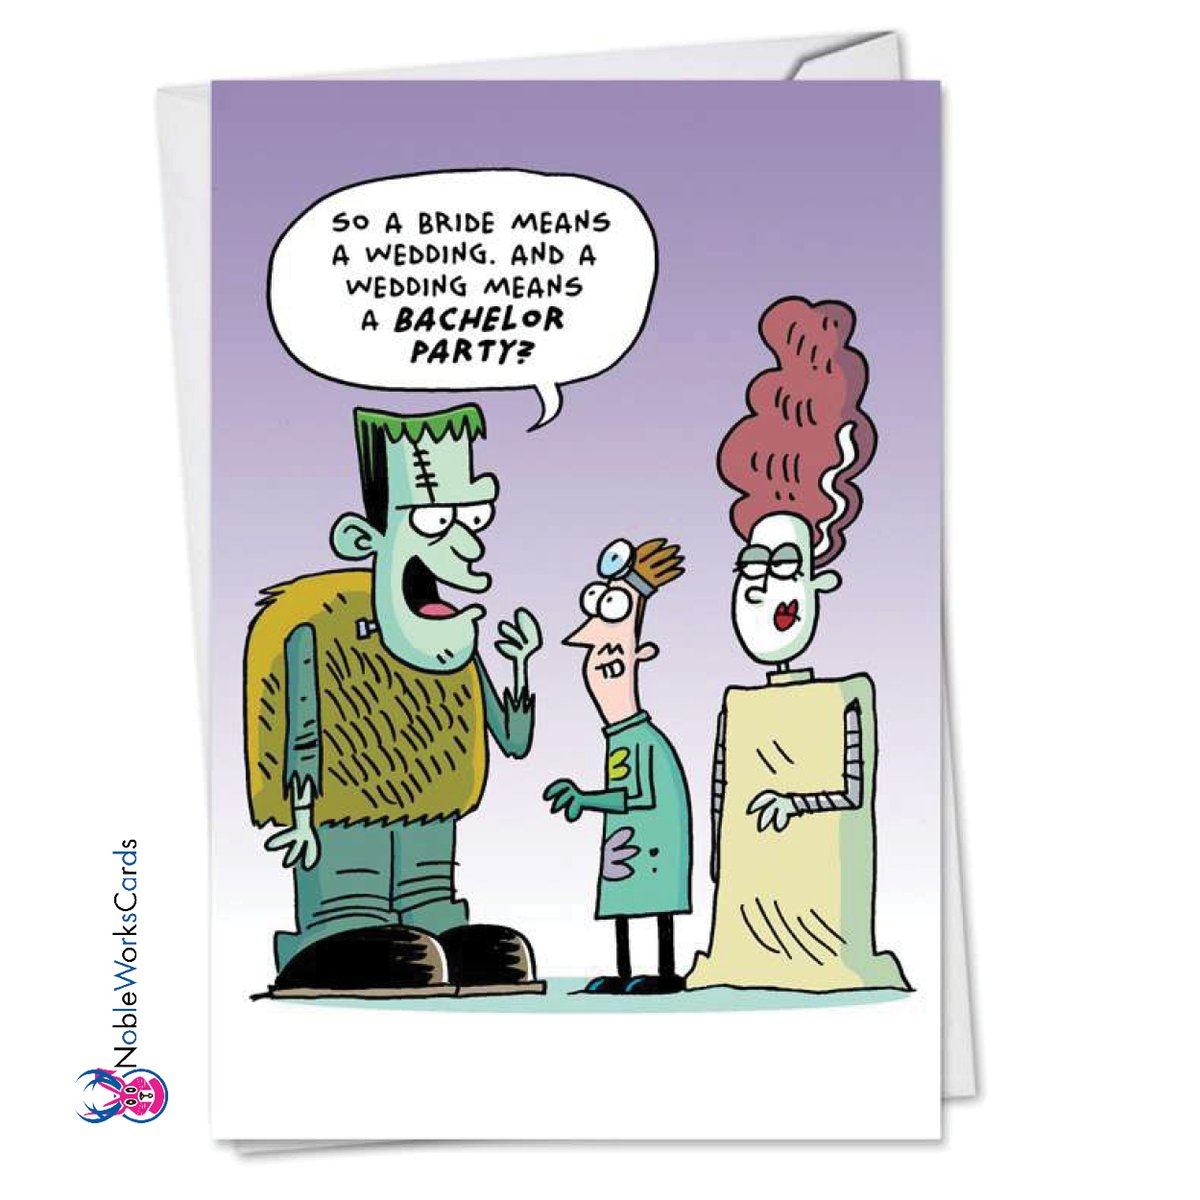 This is the negotiation ladies 💍👰🤵💸 #greetingcards #cards #stationary #hilarious #funny #bachelorparty #weddingday #engagement #marriage #groom #bride #engagementparty #party   Click on the link to find this card (item no. c2654eng) and more!